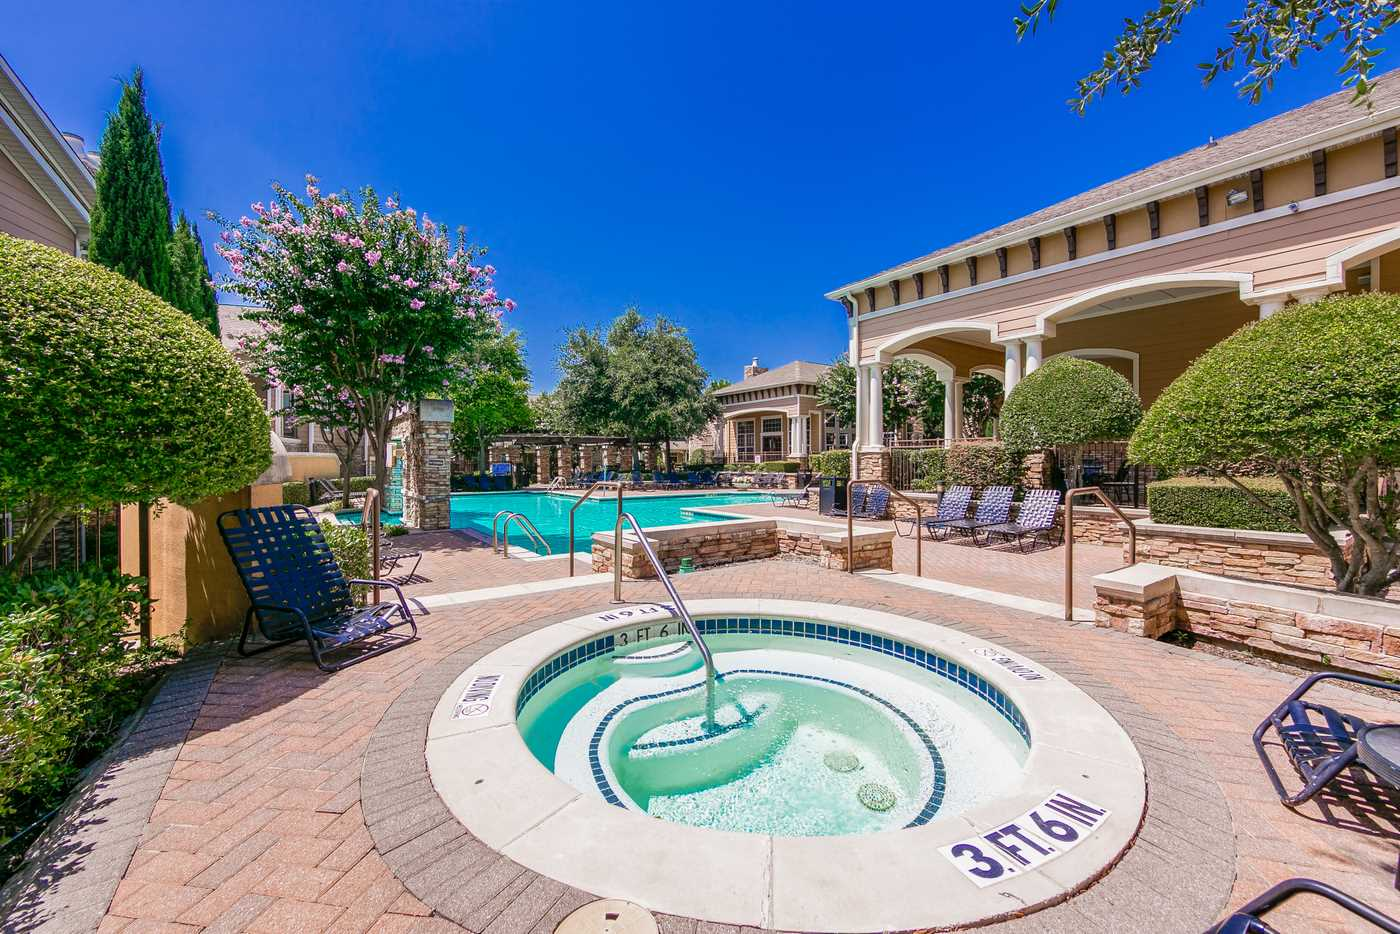 Courtney Manor Apartments In Plano Tx 75025